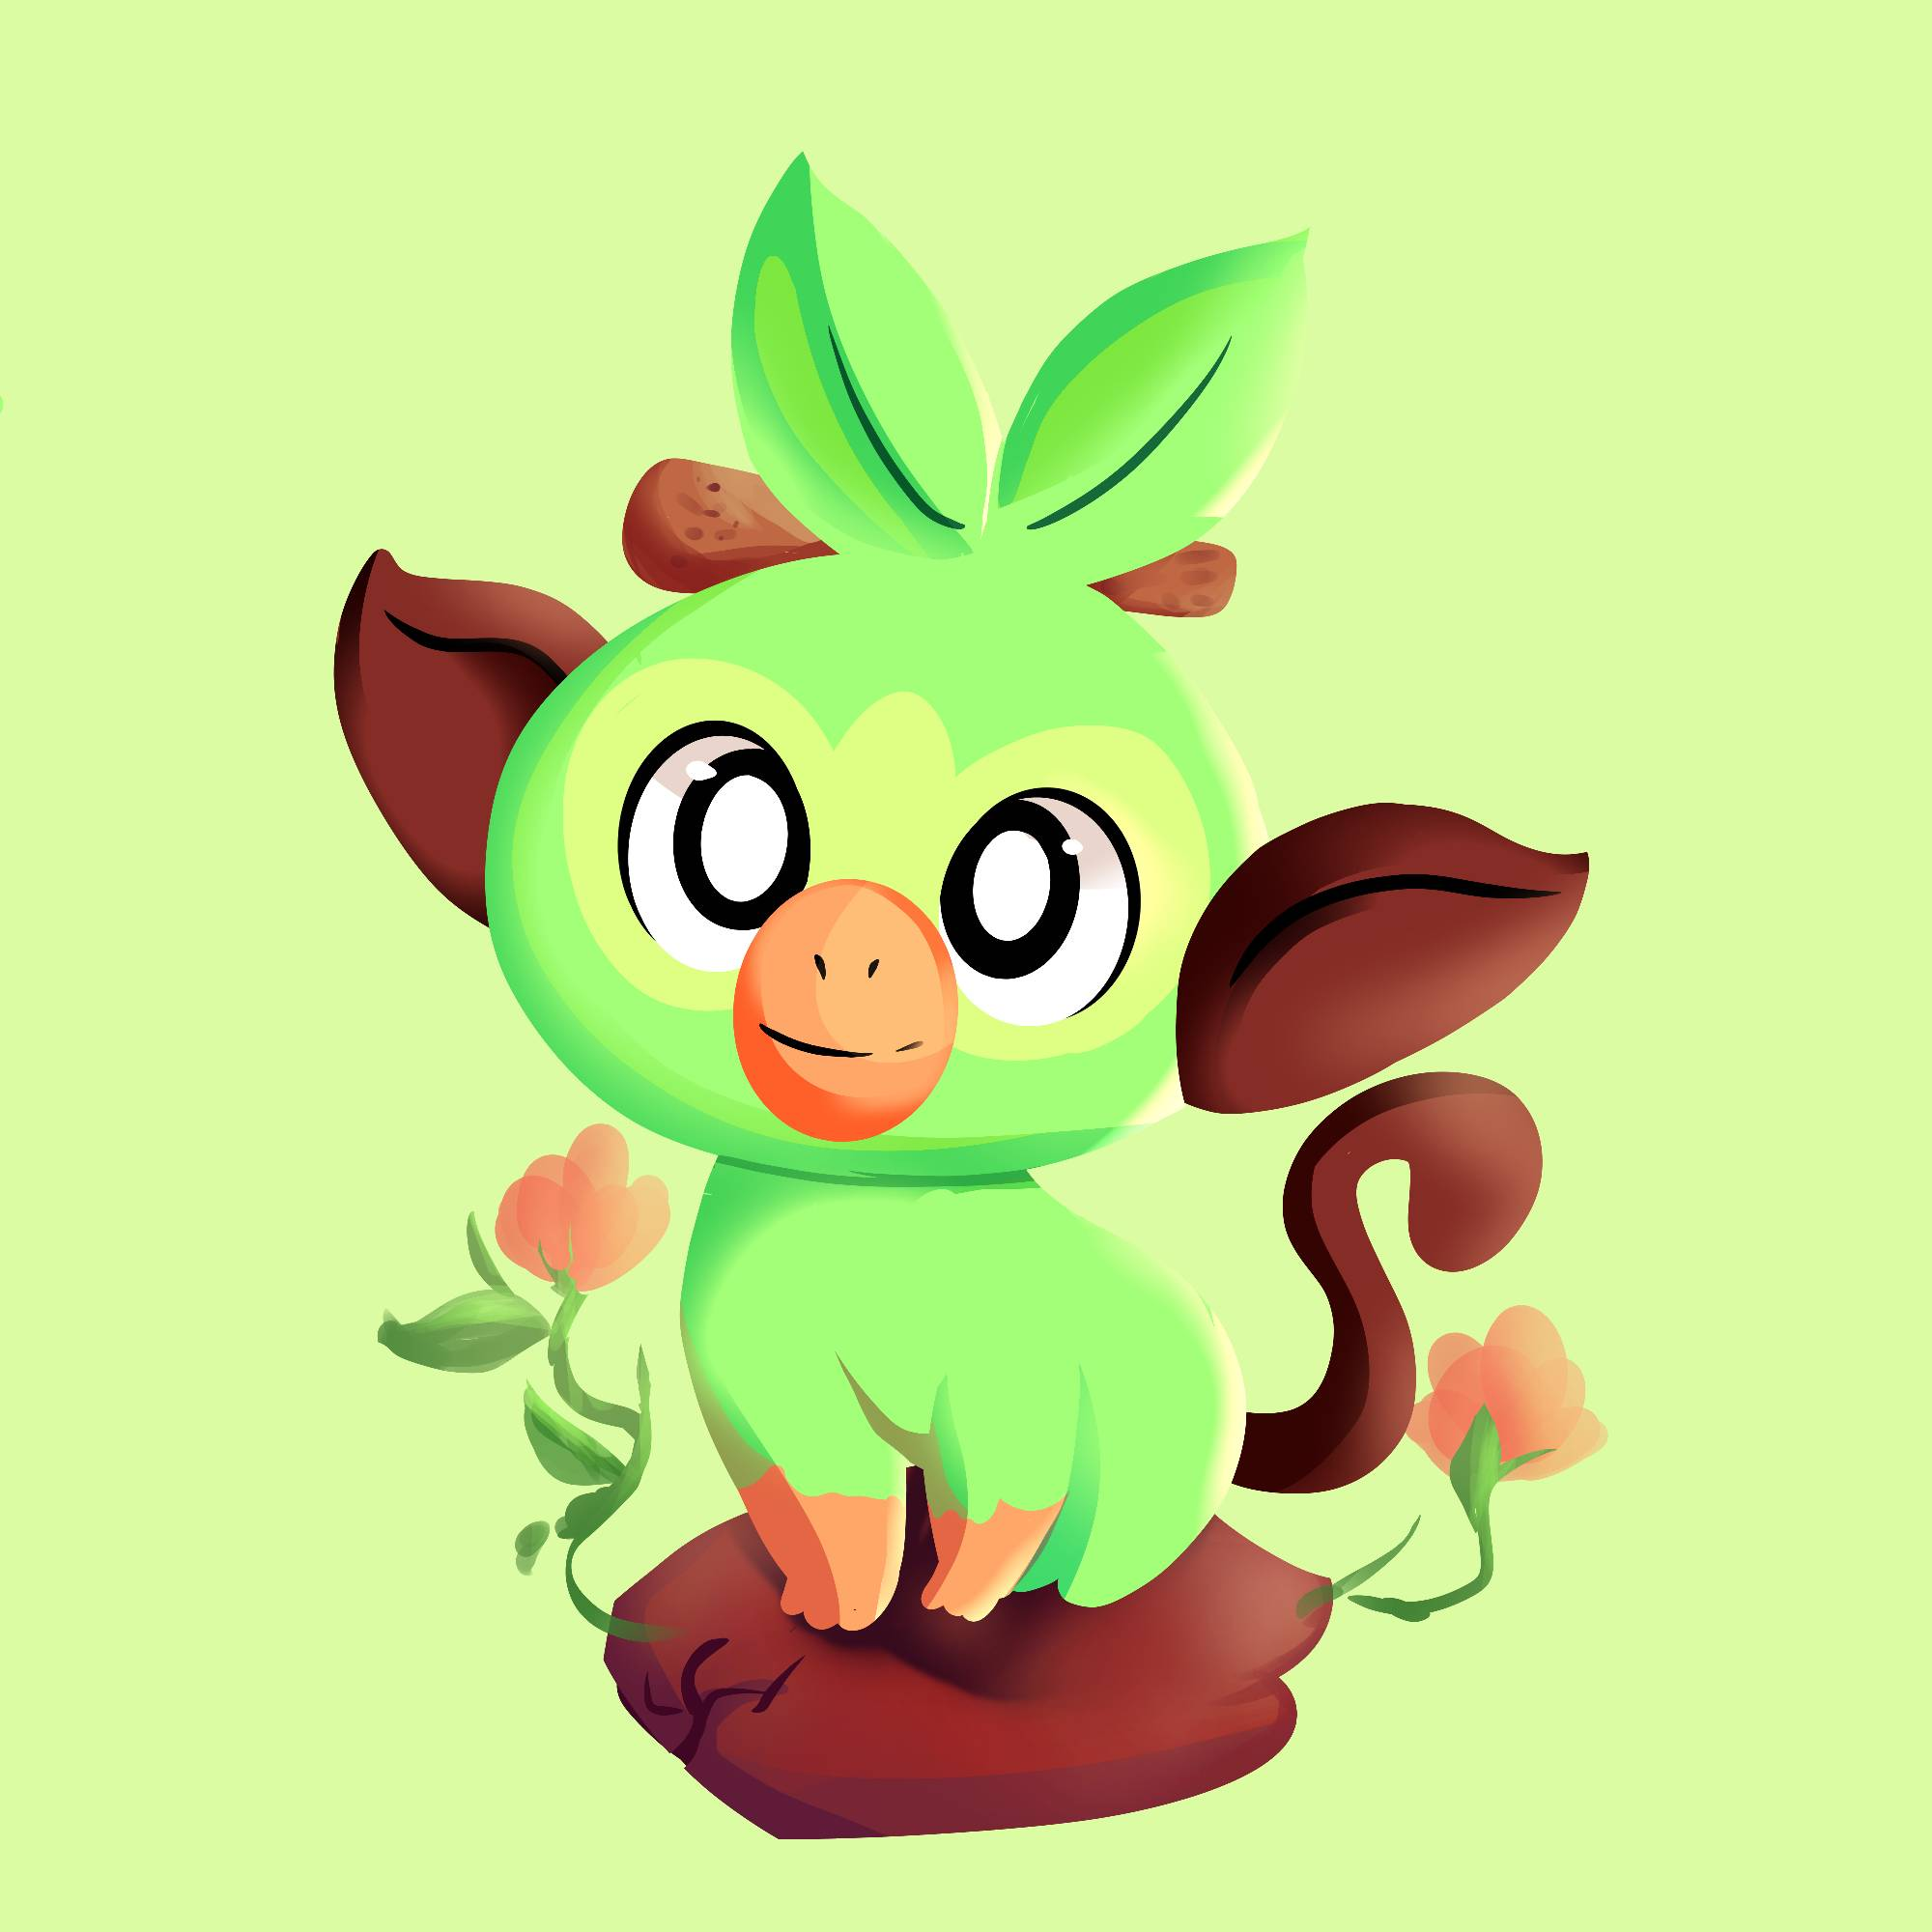 Grookey Pokemon Sword And Shield By Safille On Deviantart If heads, the defending pokémon is now paralyzed. grookey pokemon sword and shield by